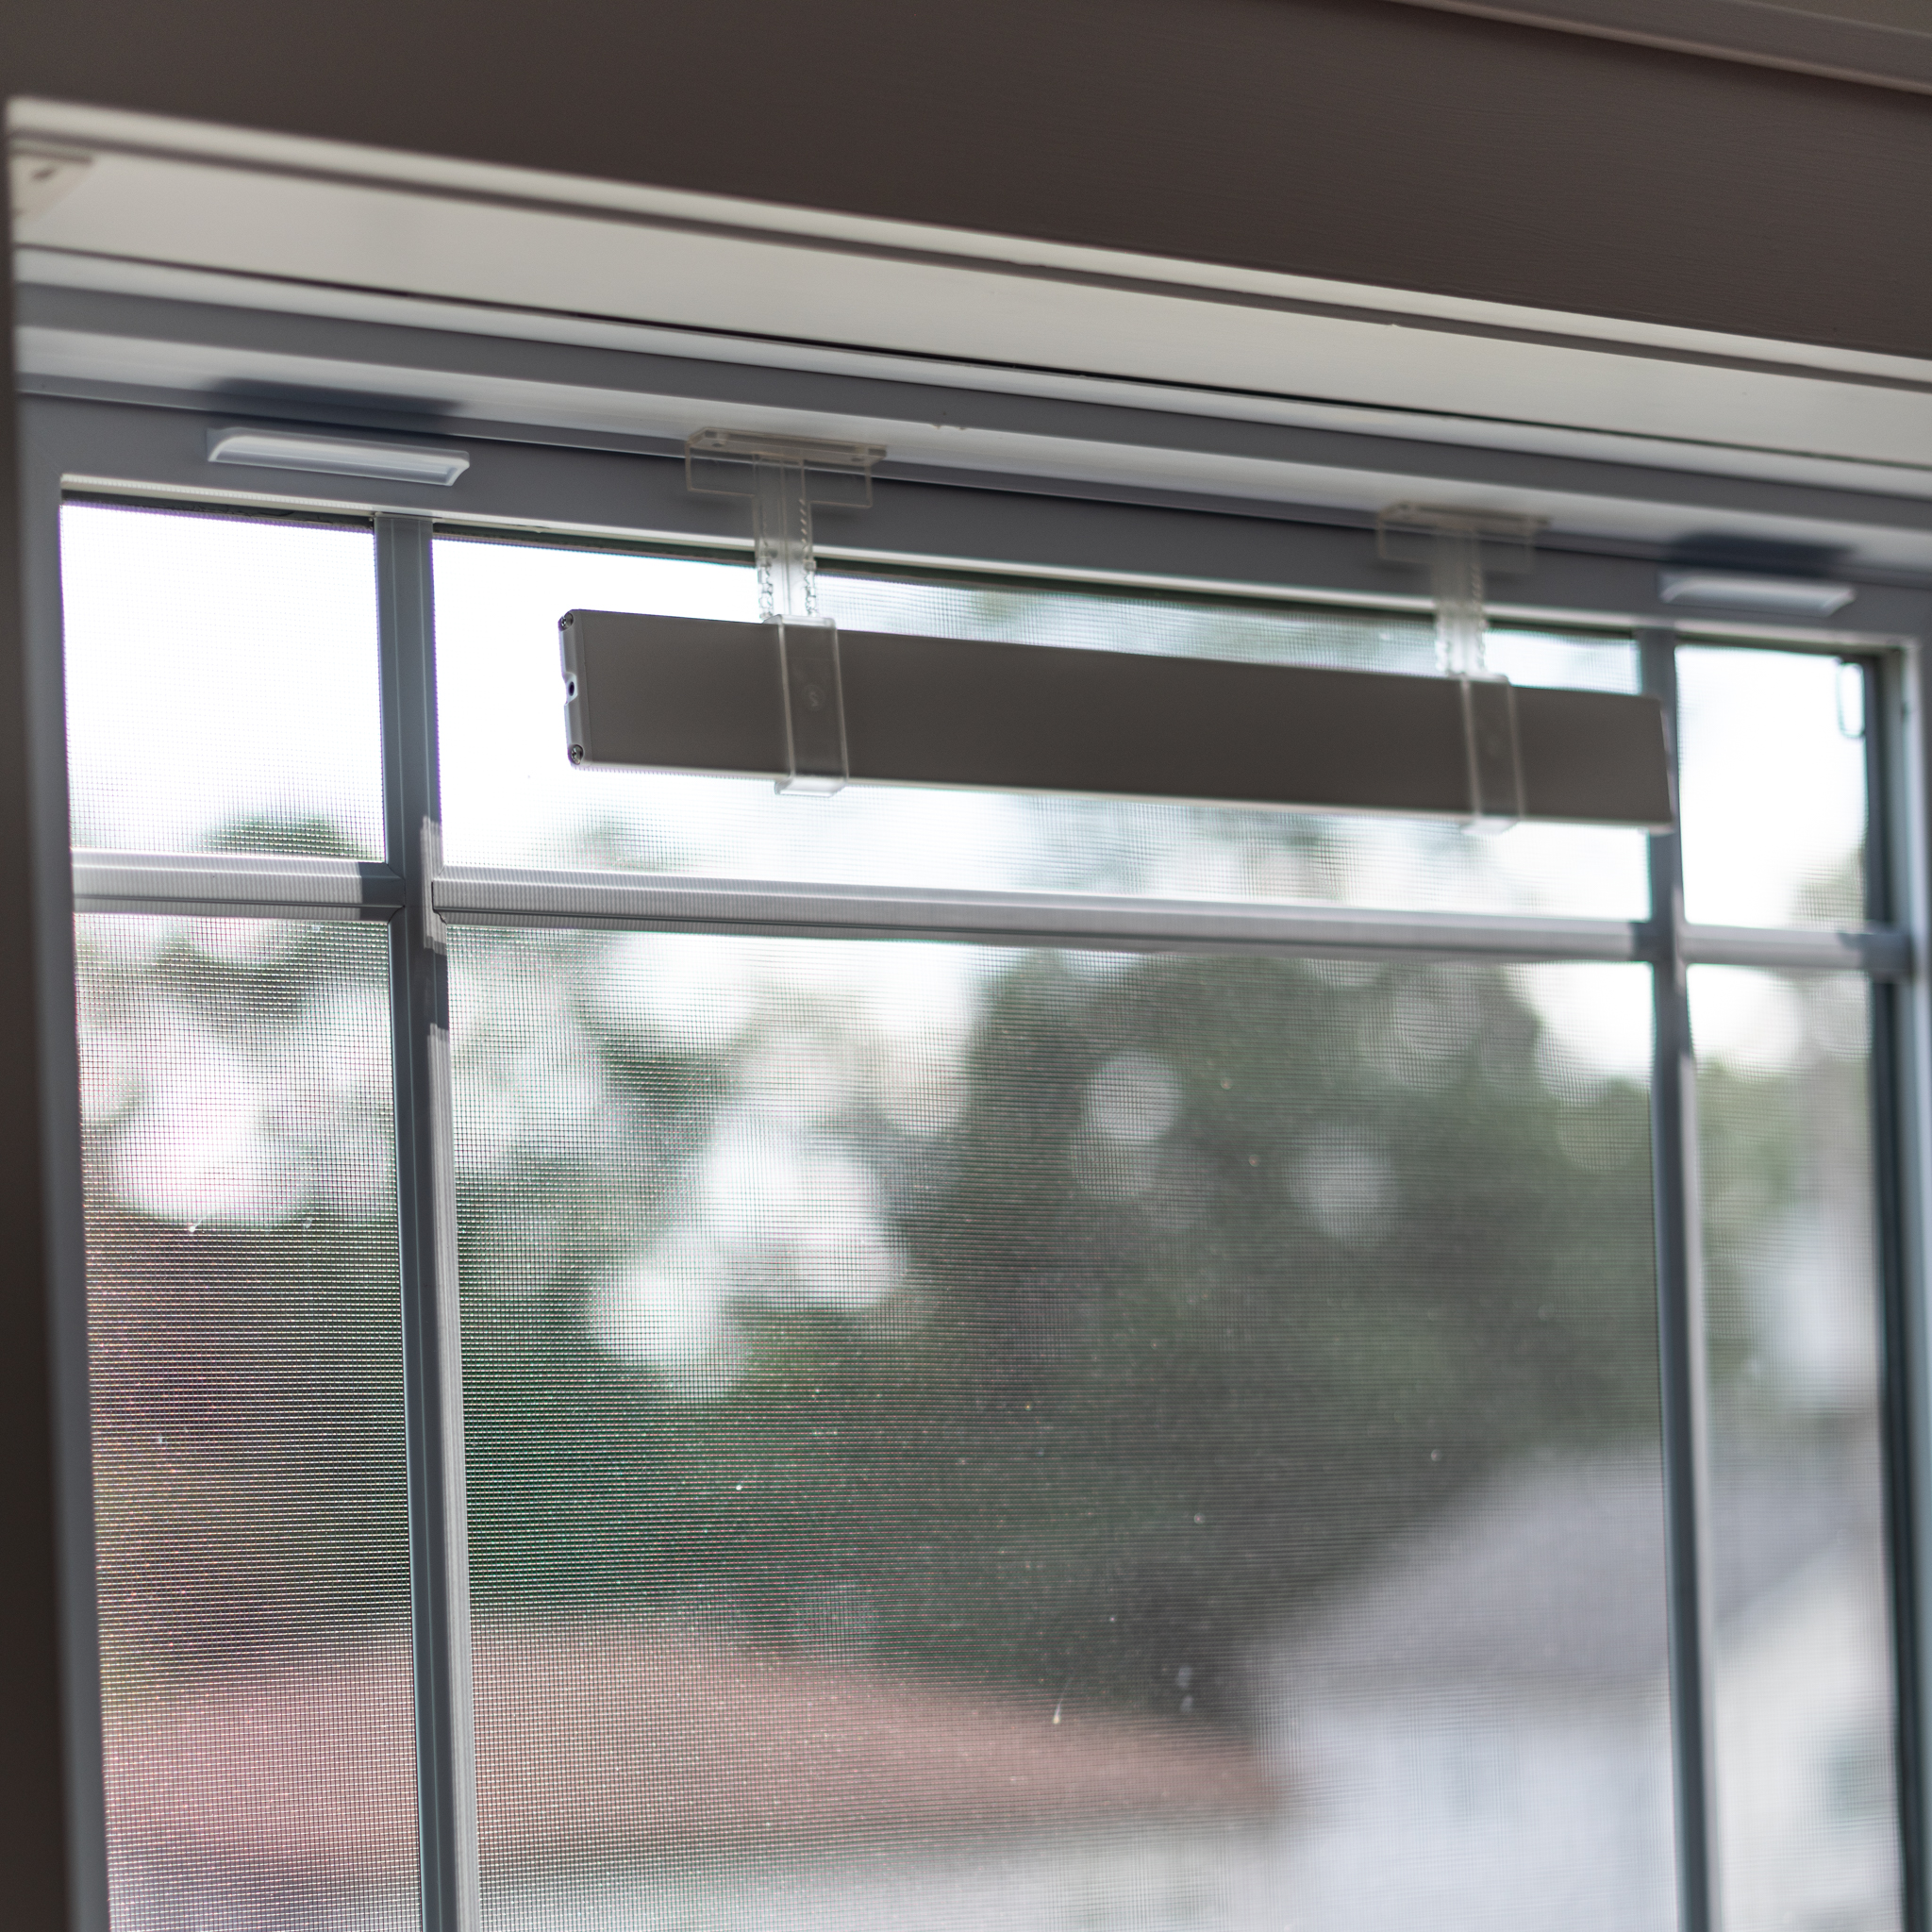 Solar Panel mounted on top of the window with sticky double-sided tape